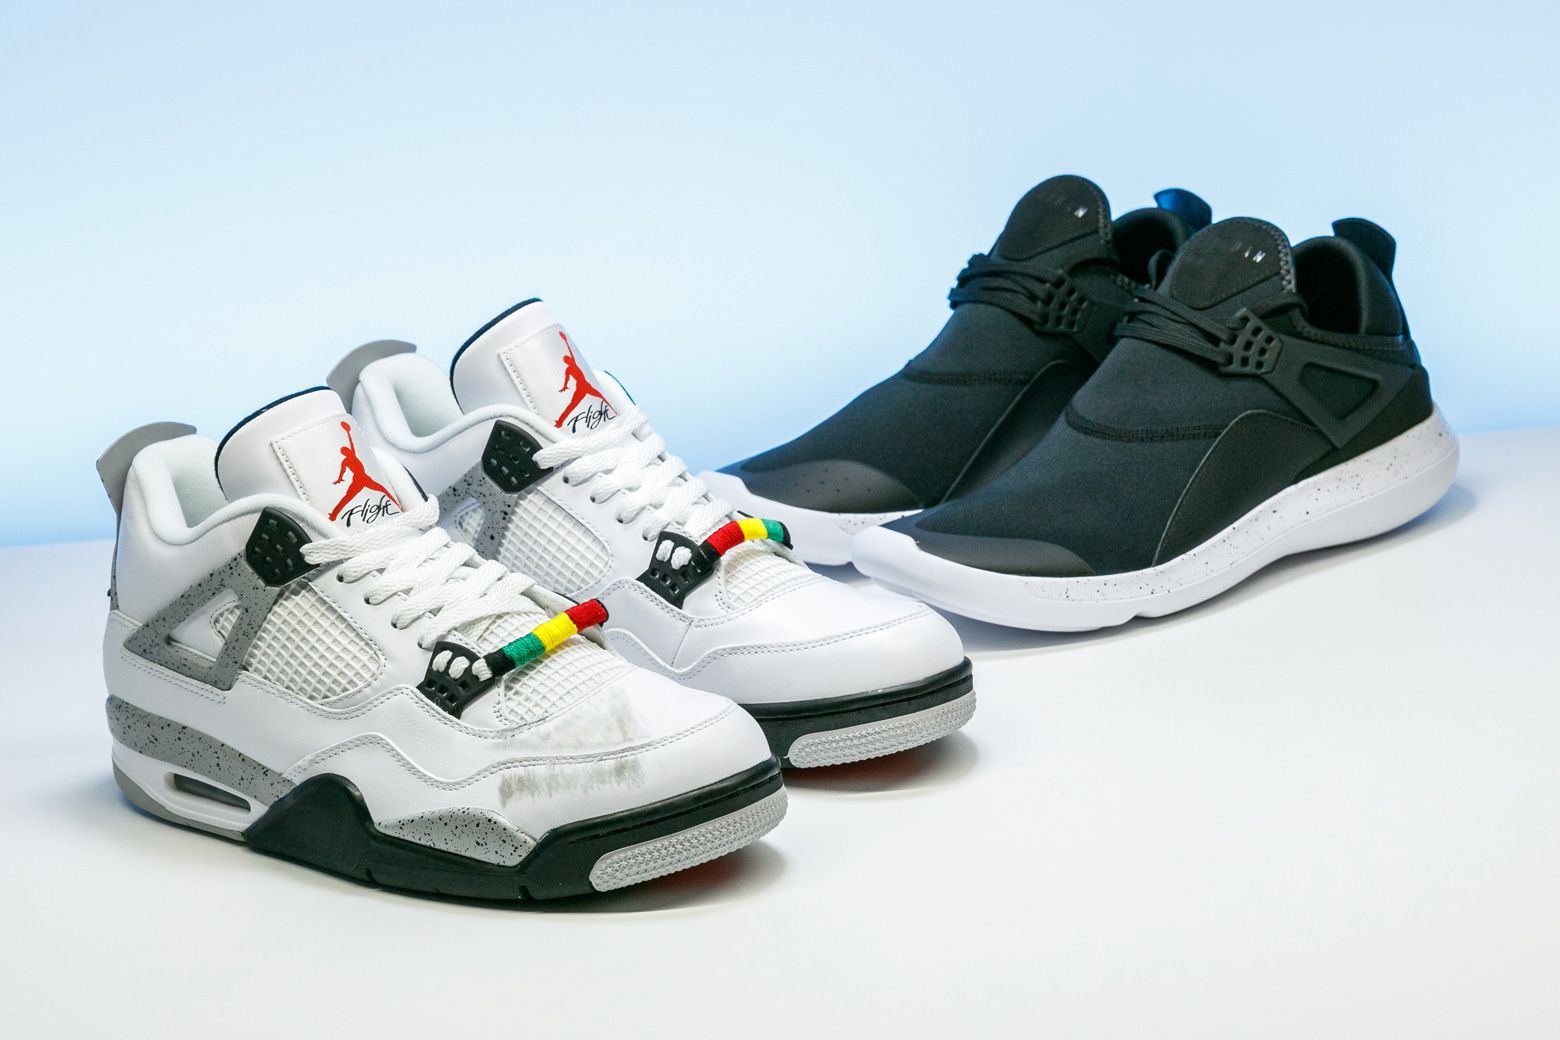 new style cf40d 0b05a Jordan 4 And Fly 89 Pack